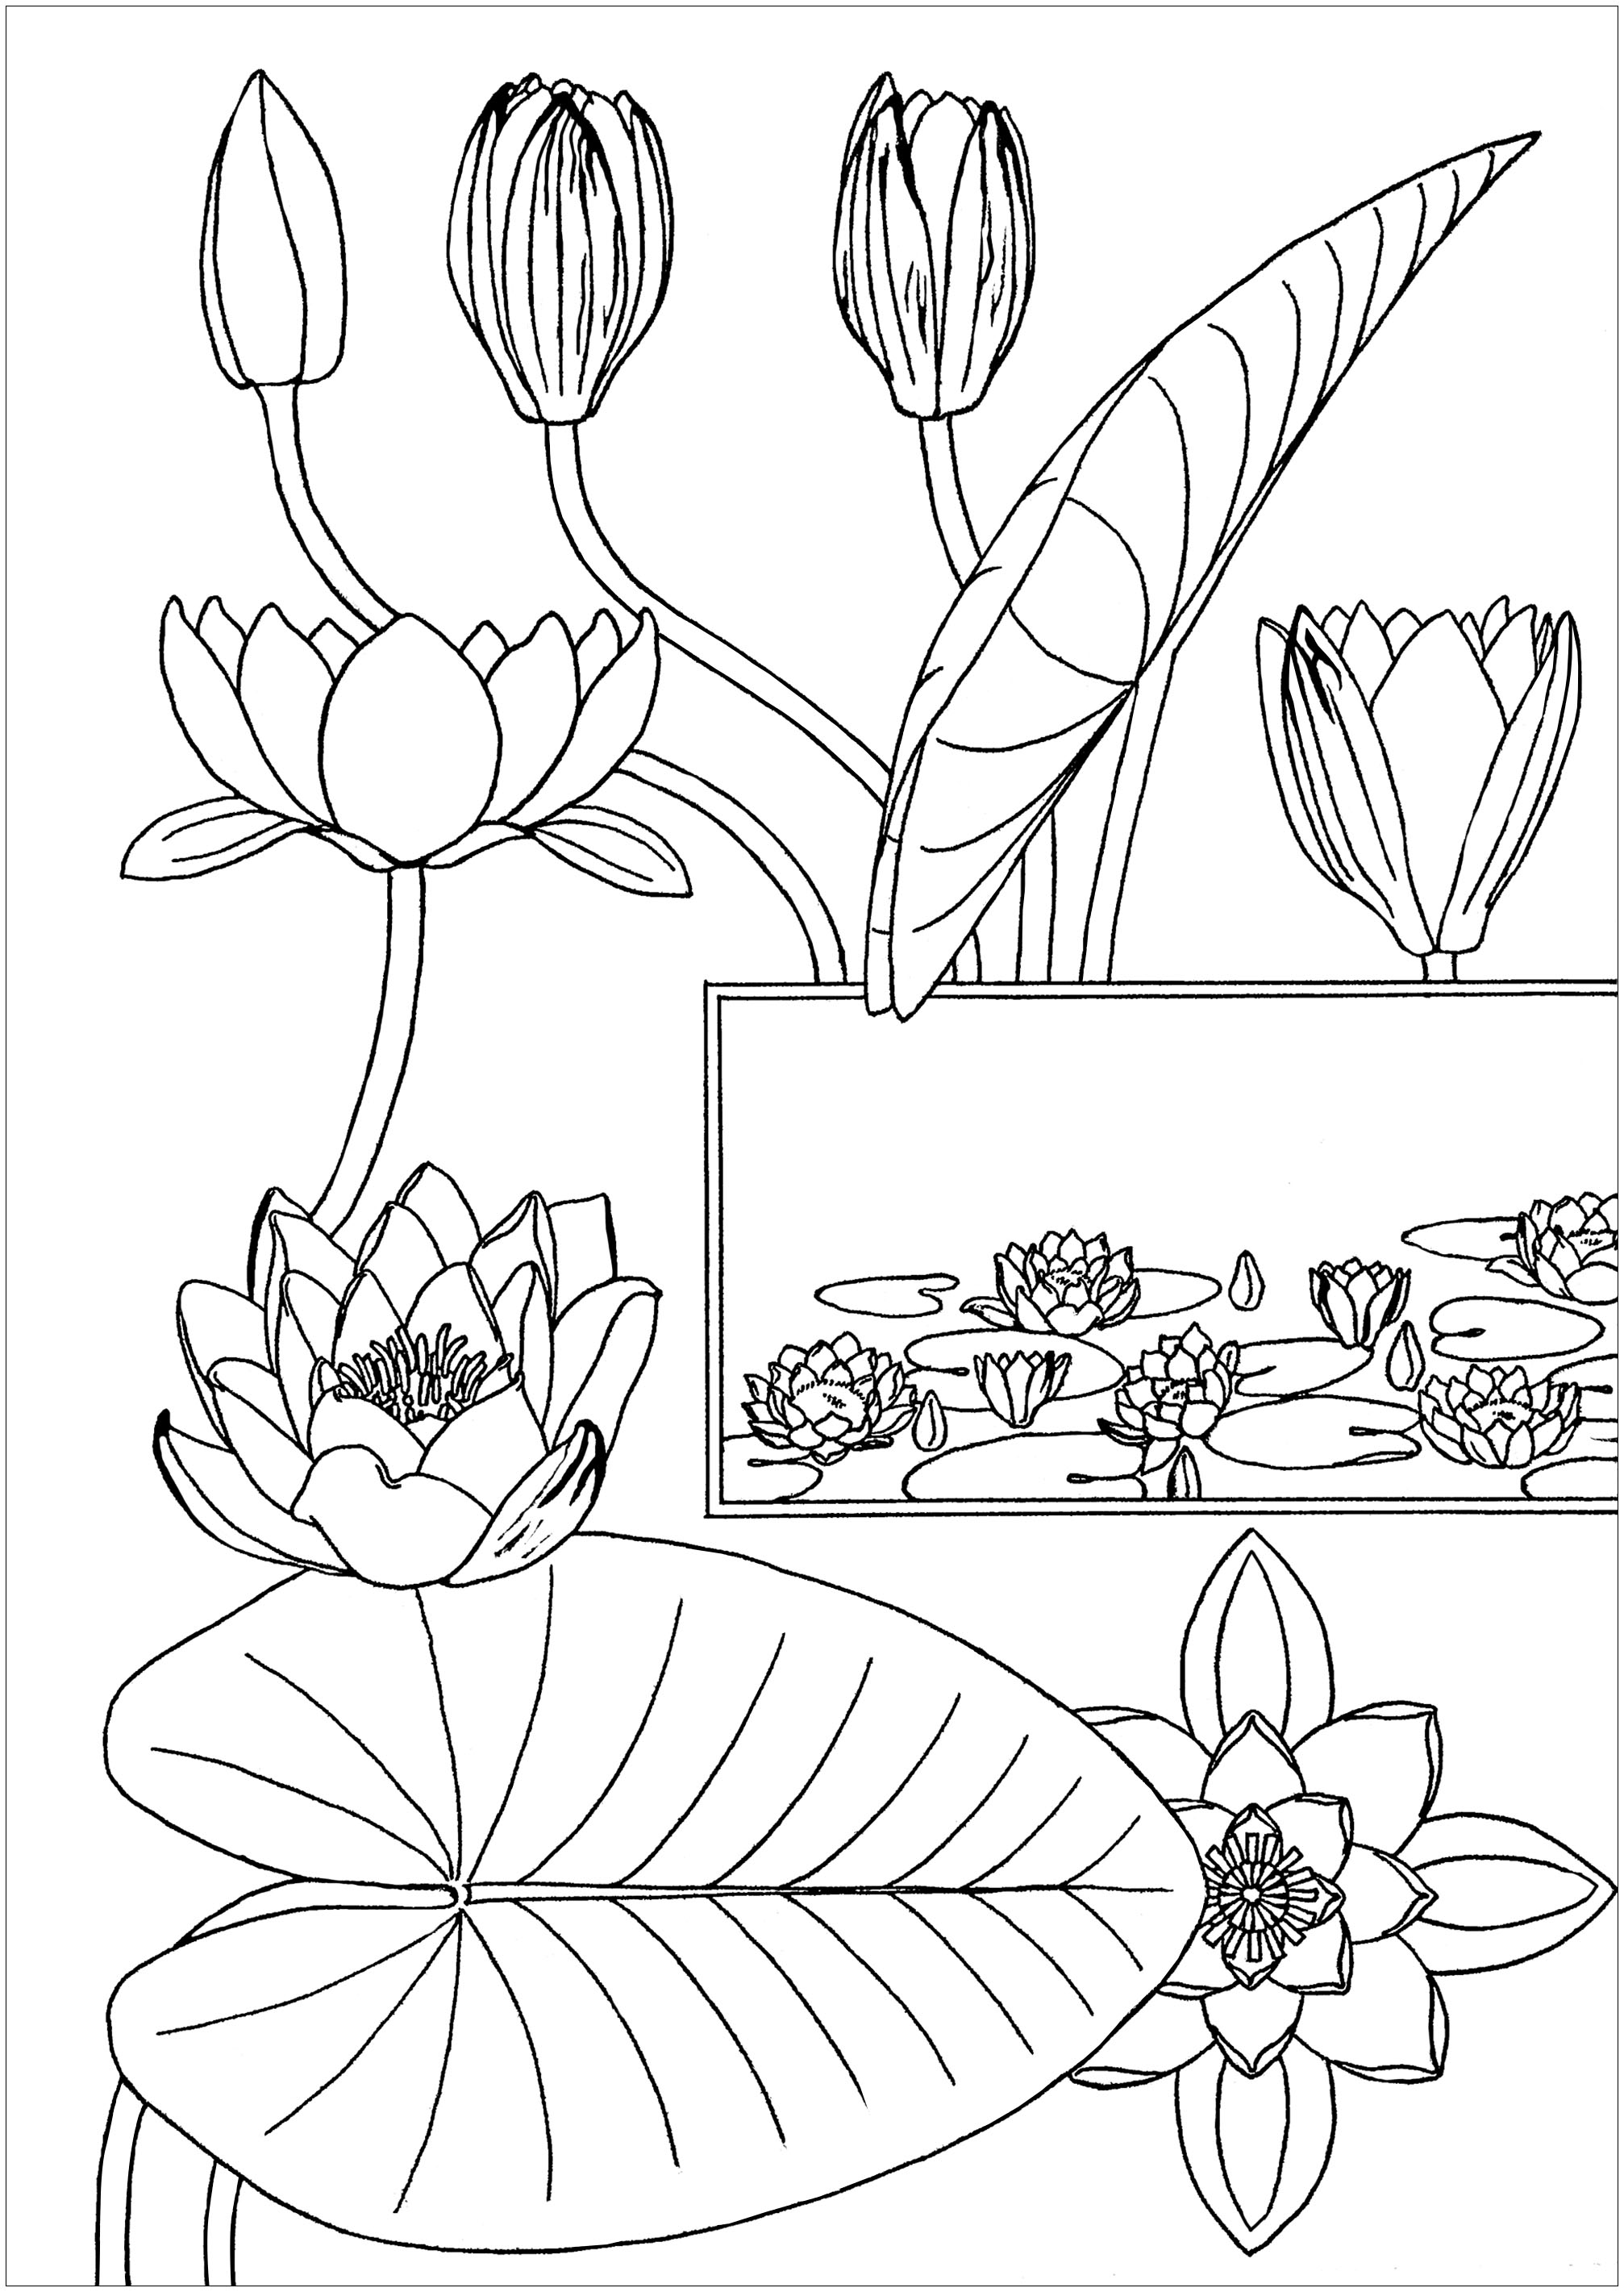 Coloring page created from an illustration by Eugene Grasset : Nénuphar (Water-Lily) (1869)